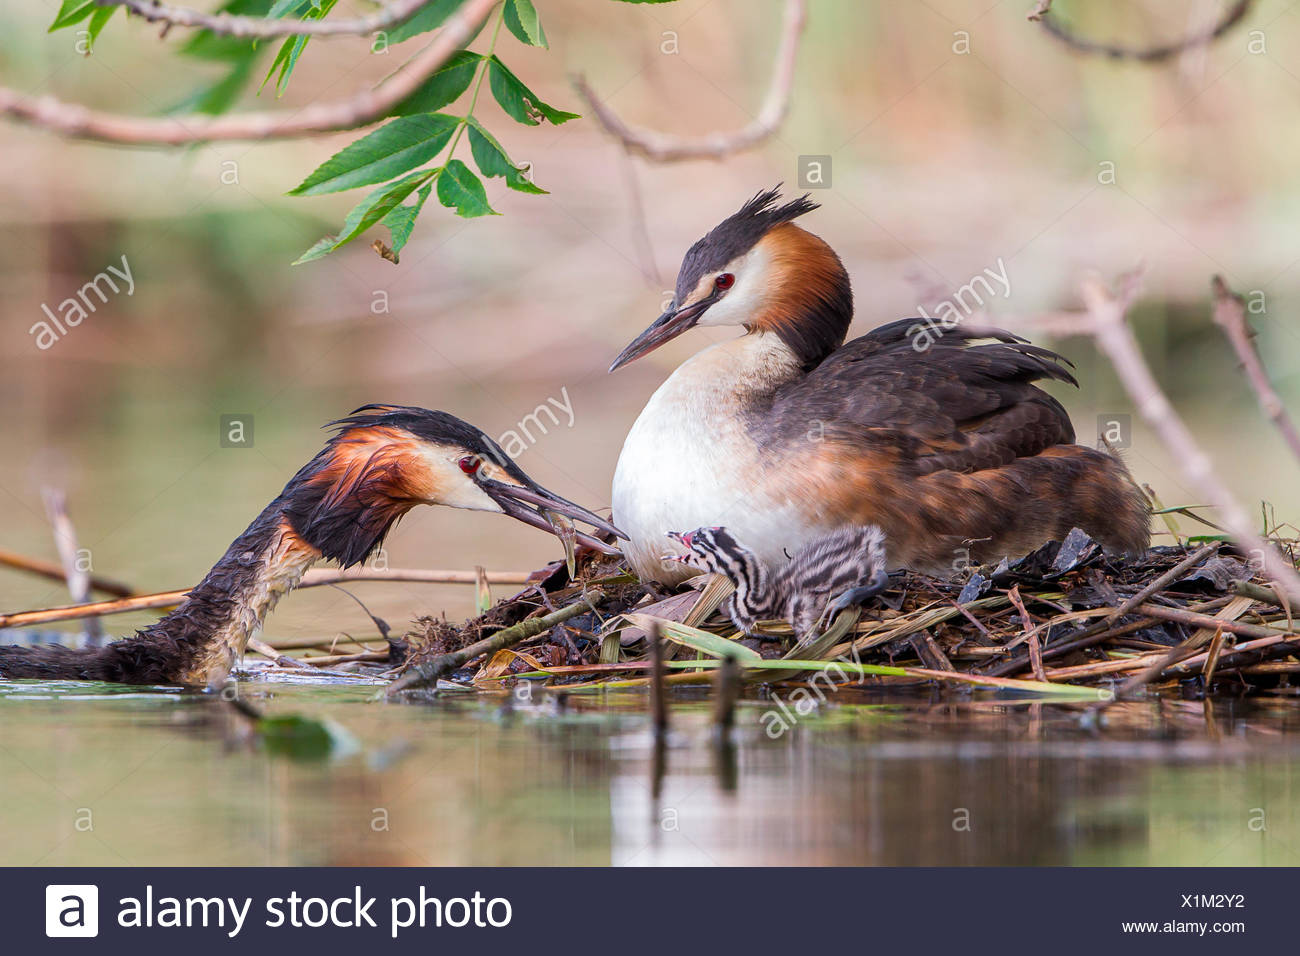 Great Crested Grebes (Podiceps cristatus) feeding chick at the nest, North Hesse, Hesse, Germany - Stock Image